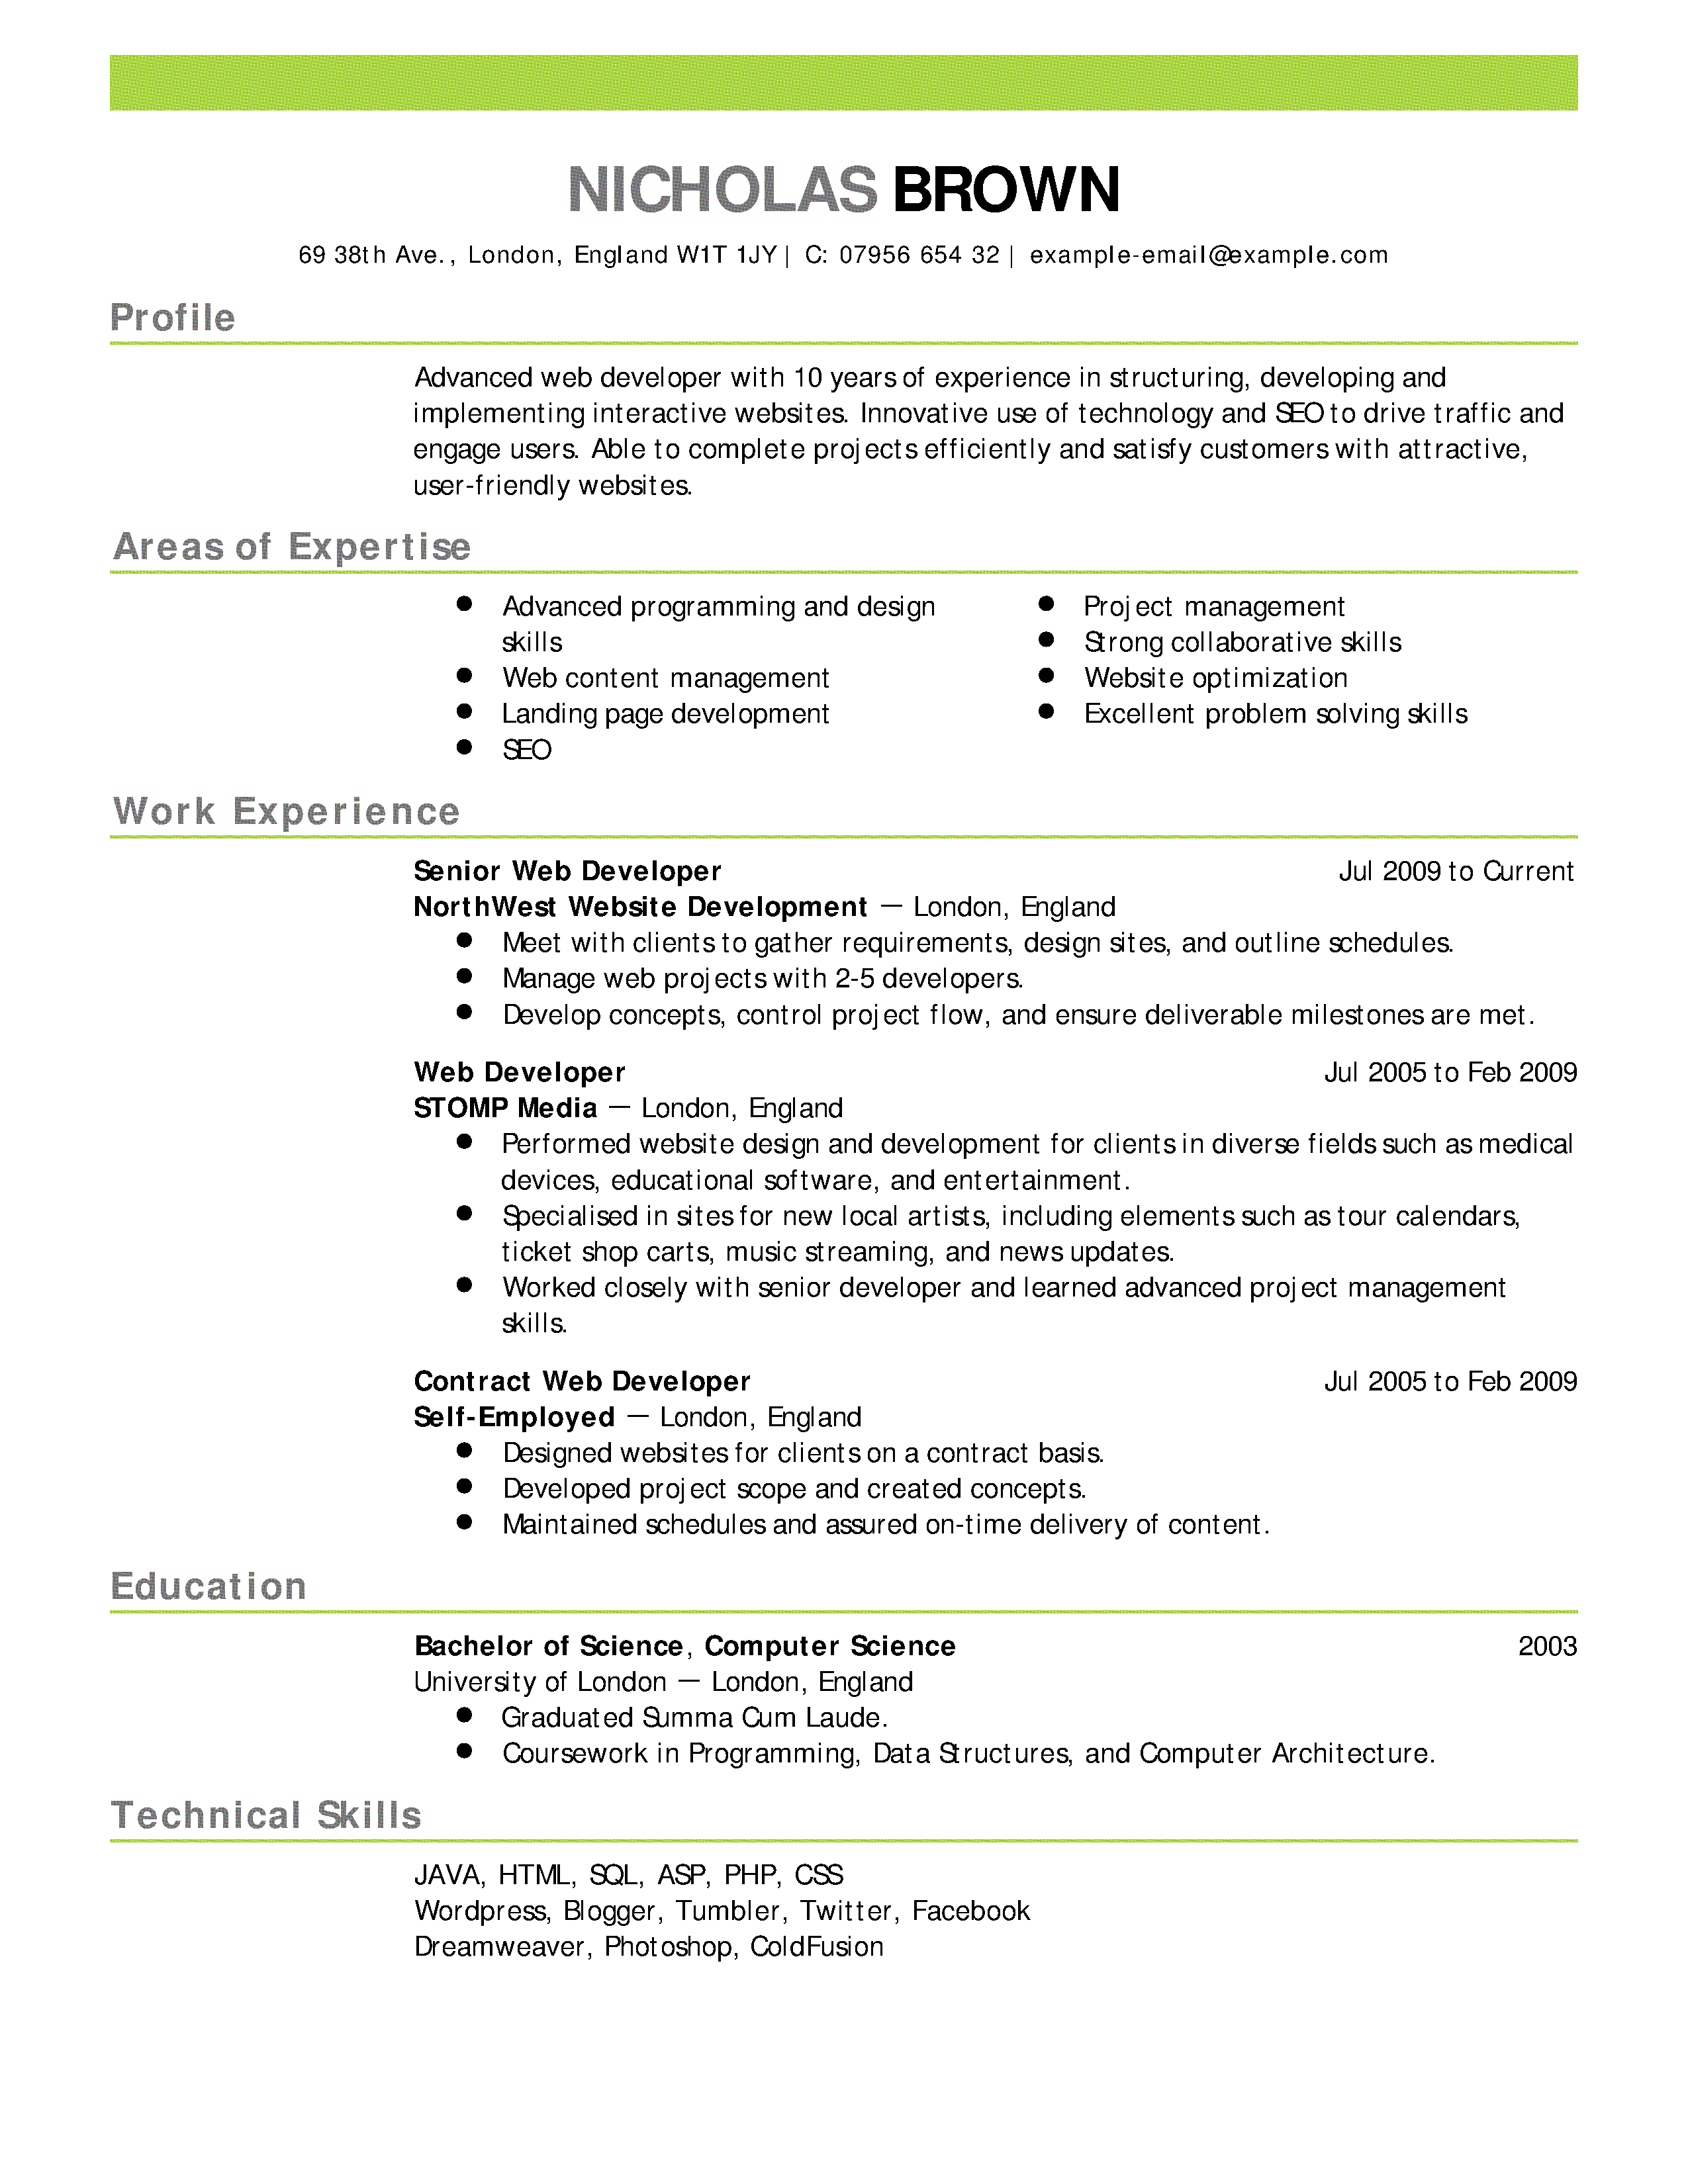 Professional Resume Sample #1